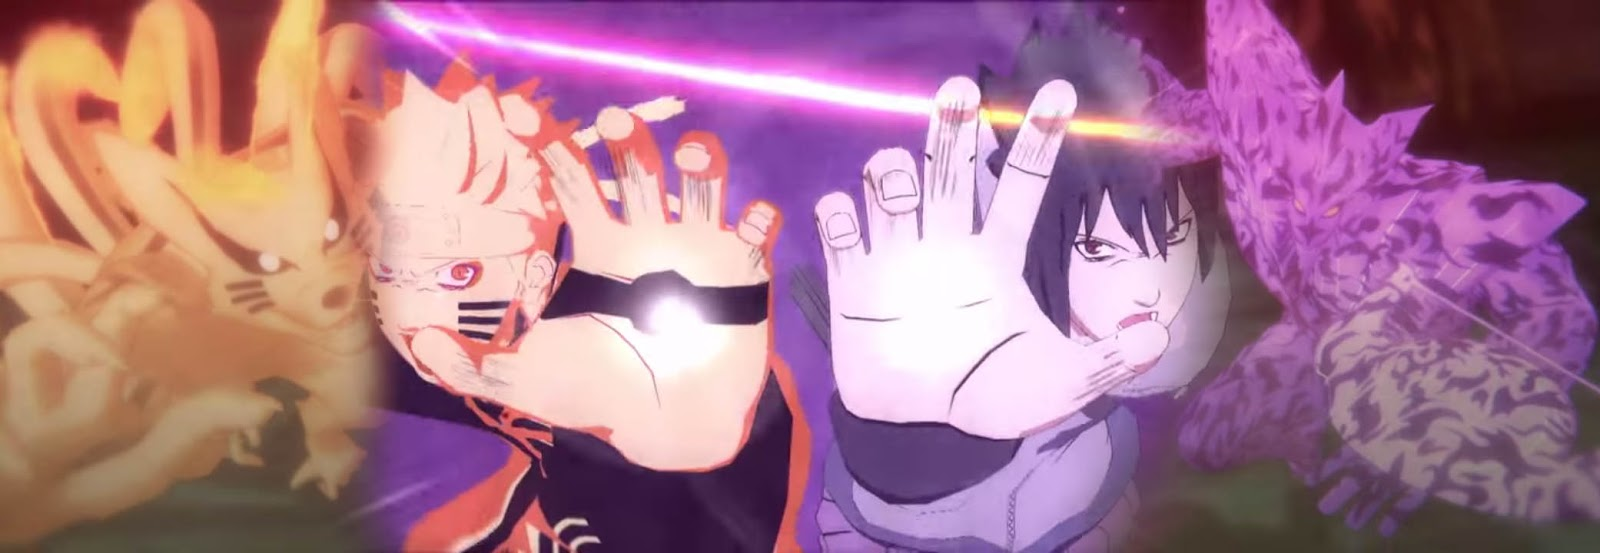 Naruto Shippuden Ultimate Ninja Storm 4 video game trailer impressions action fighting game trailer review for xbox one, sony playstation 4, and PC Steam CMAQUEST